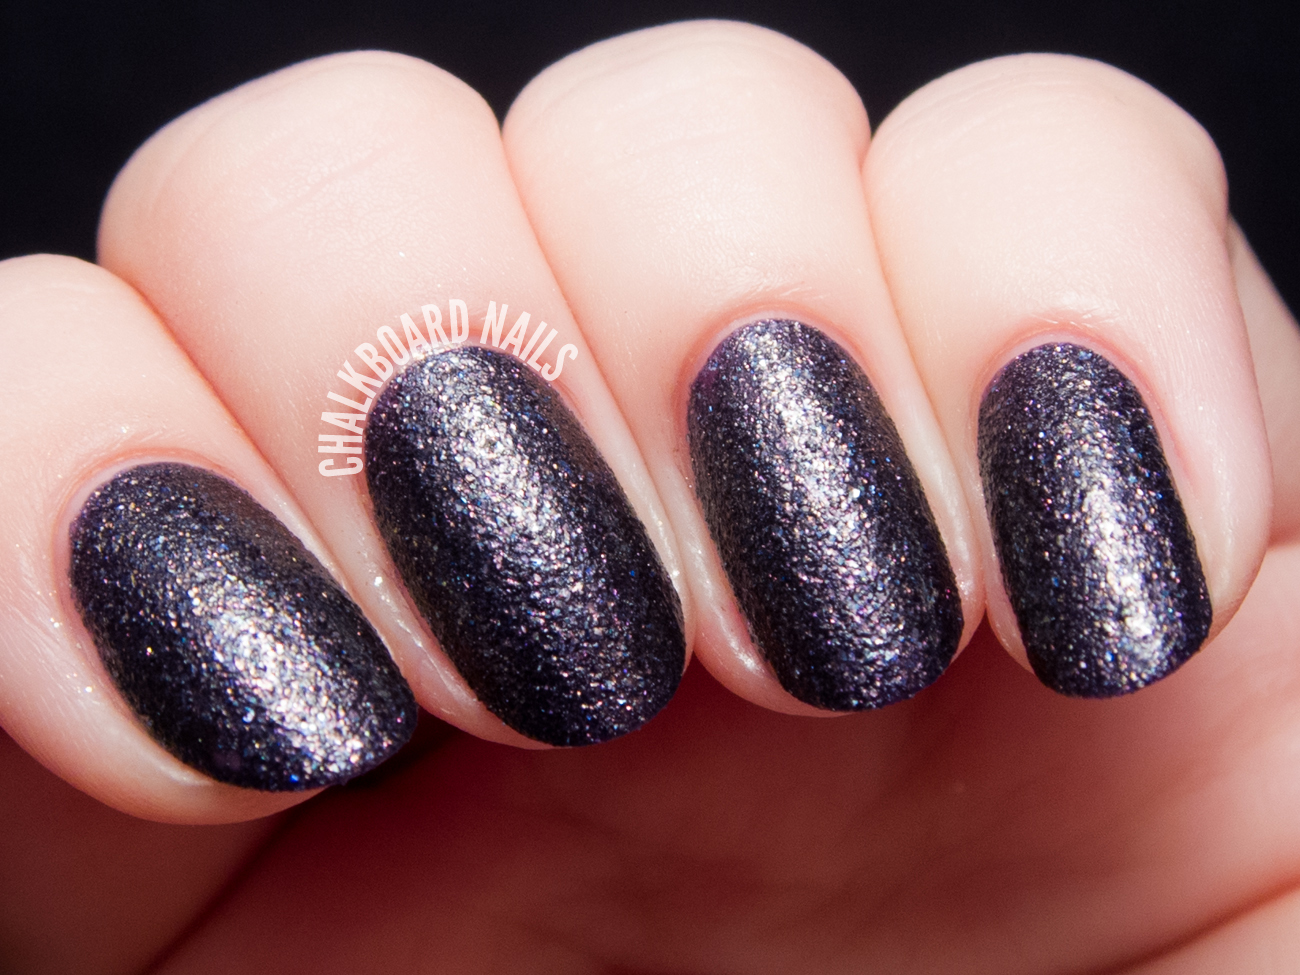 Color Club You're So Vain via @chalkboardnails